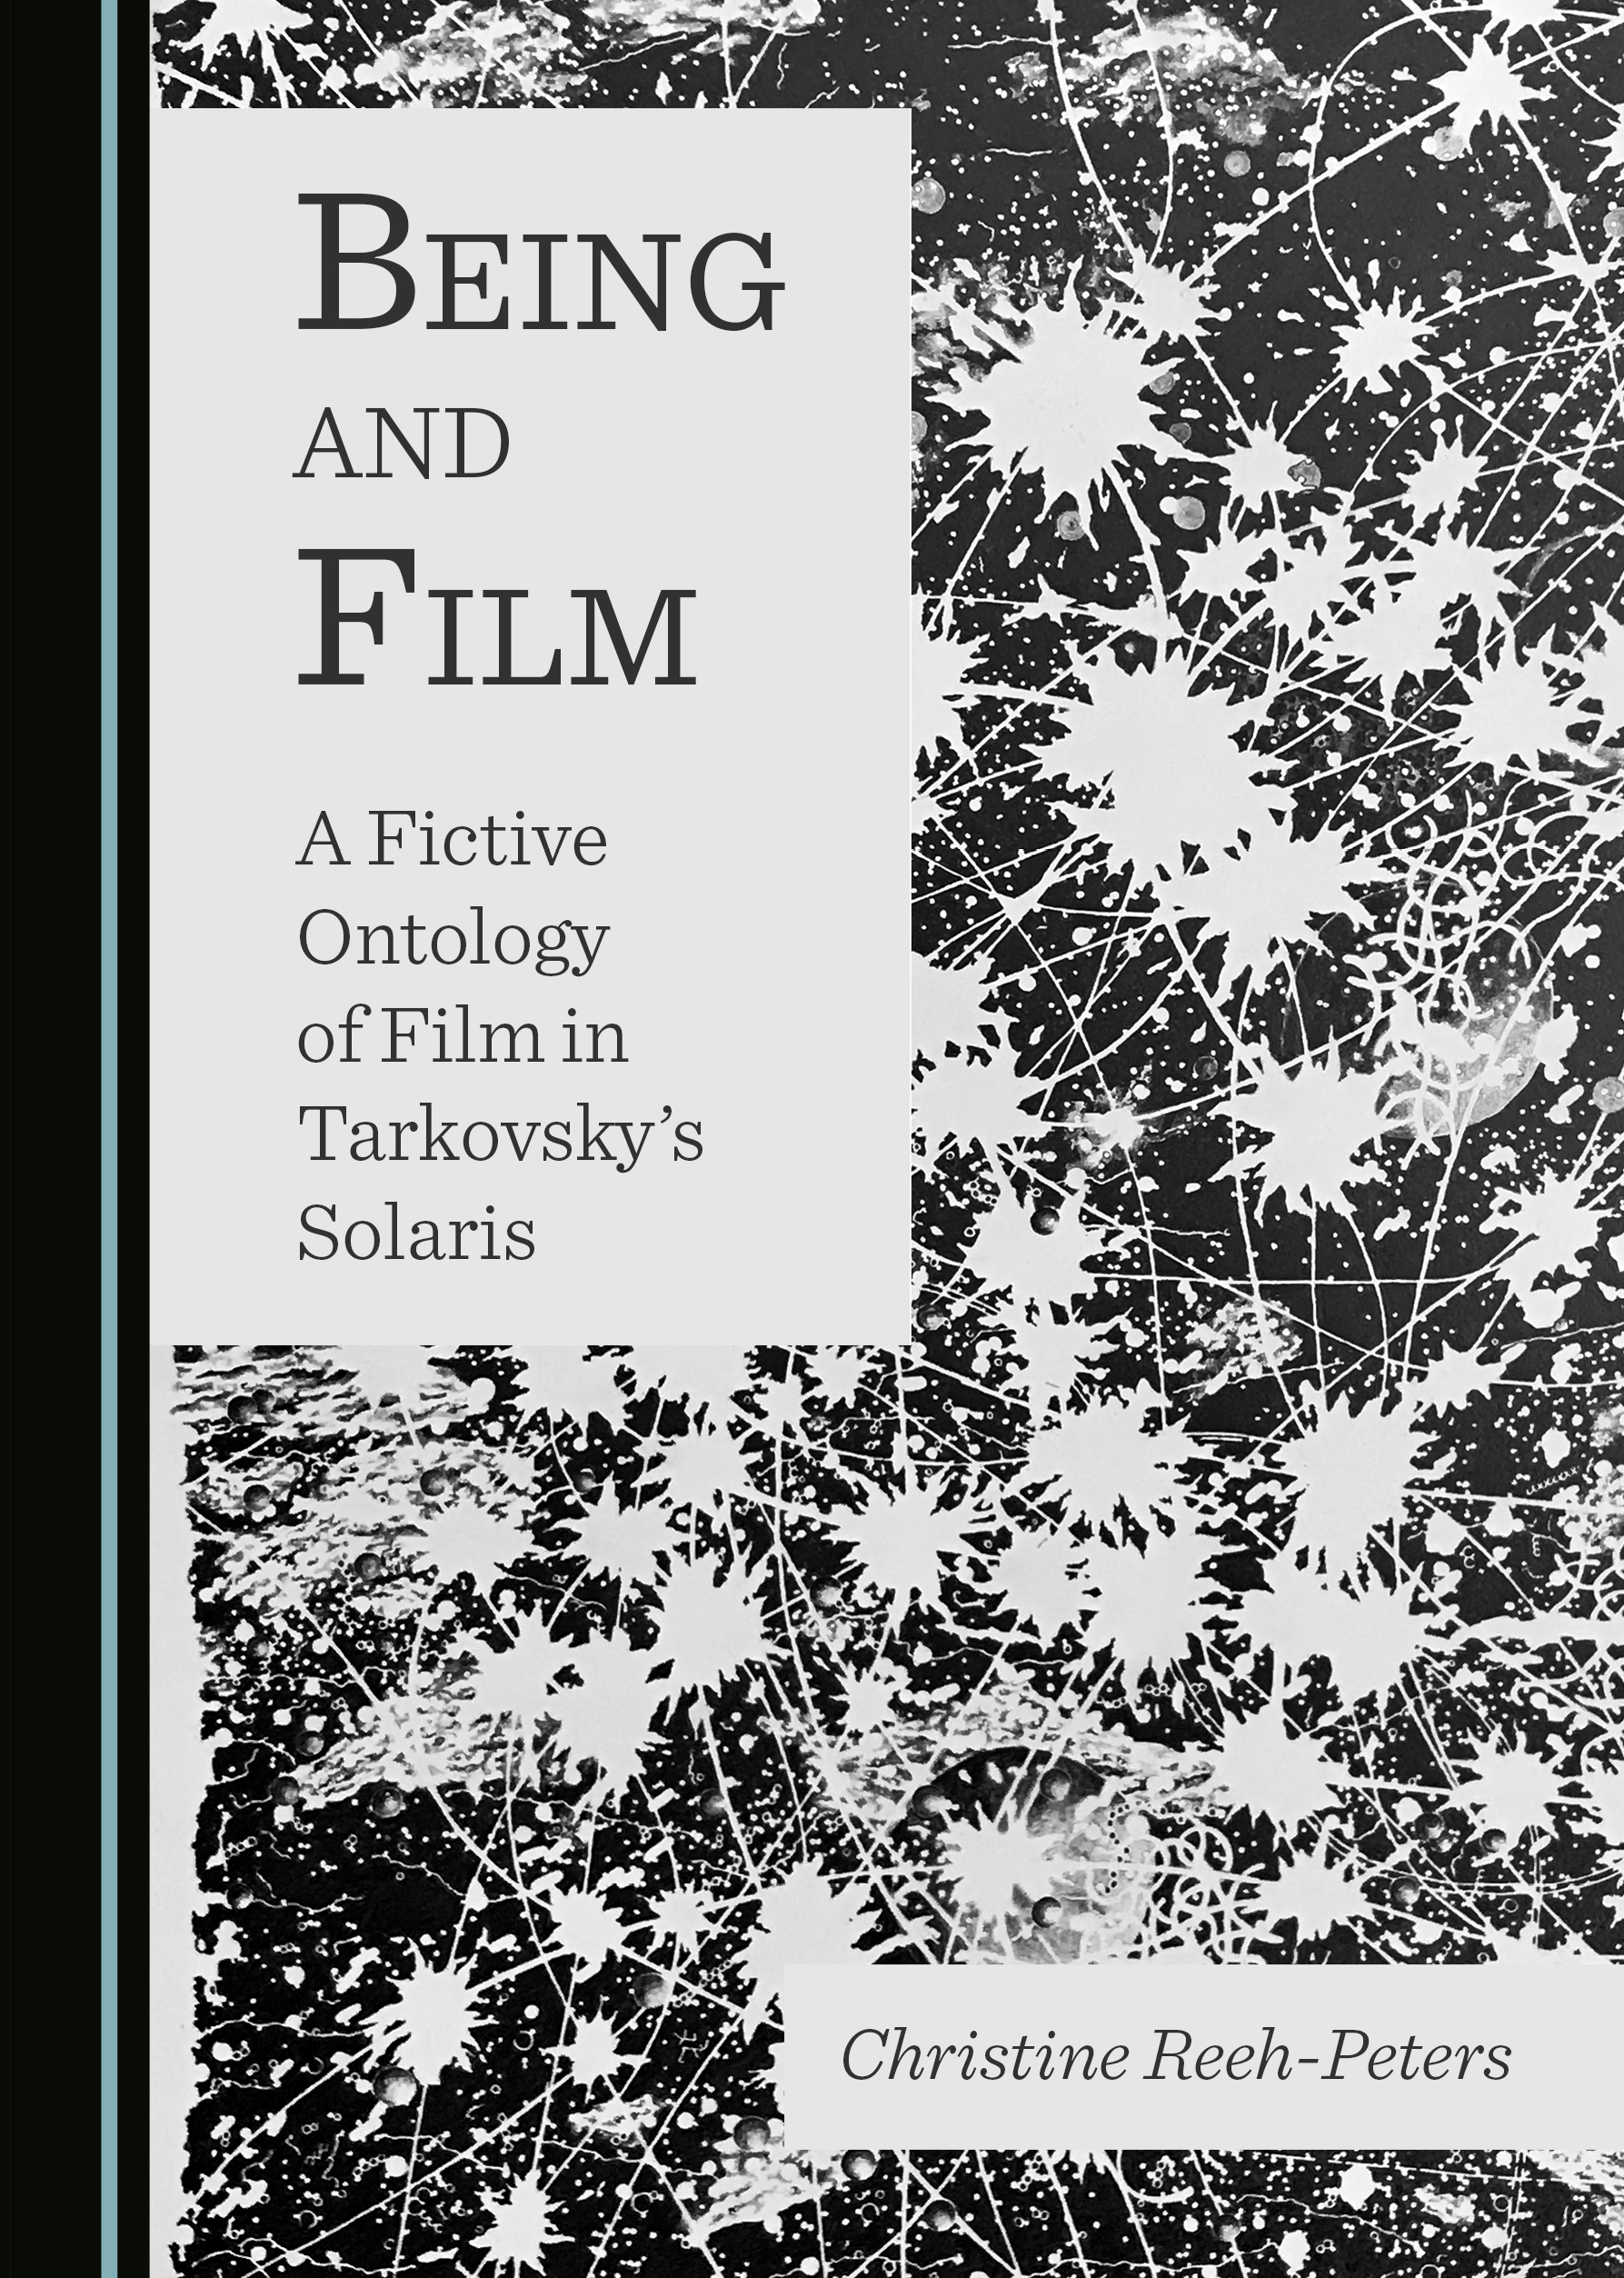 Being and Film: A Fictive Ontology of Film in Tarkovsky's Solaris